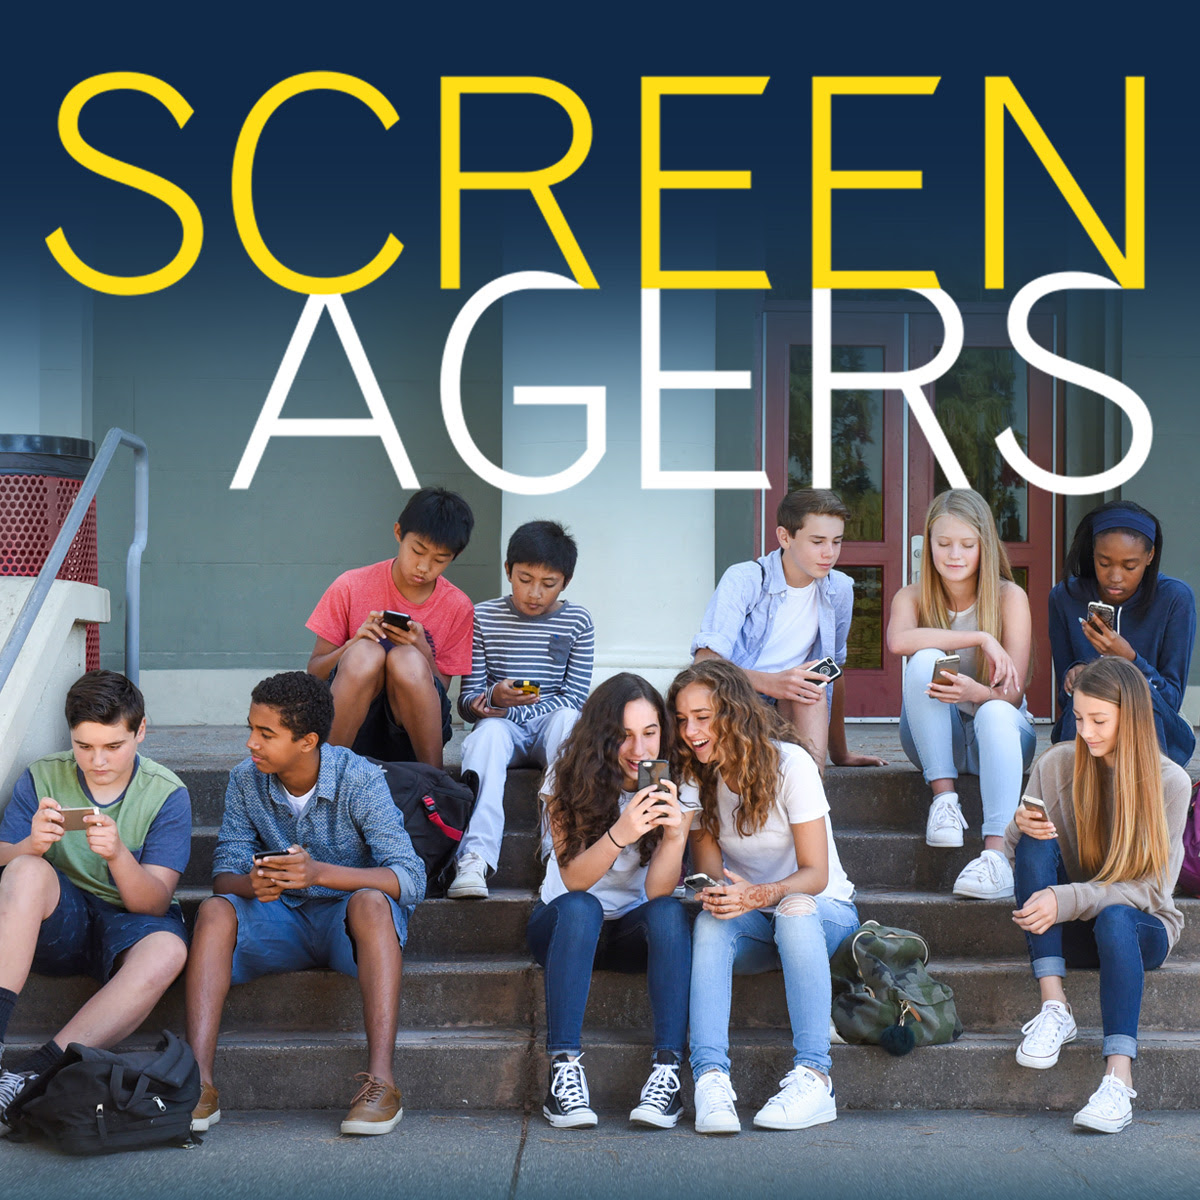 Screenagers Film Presented By Your Choicez